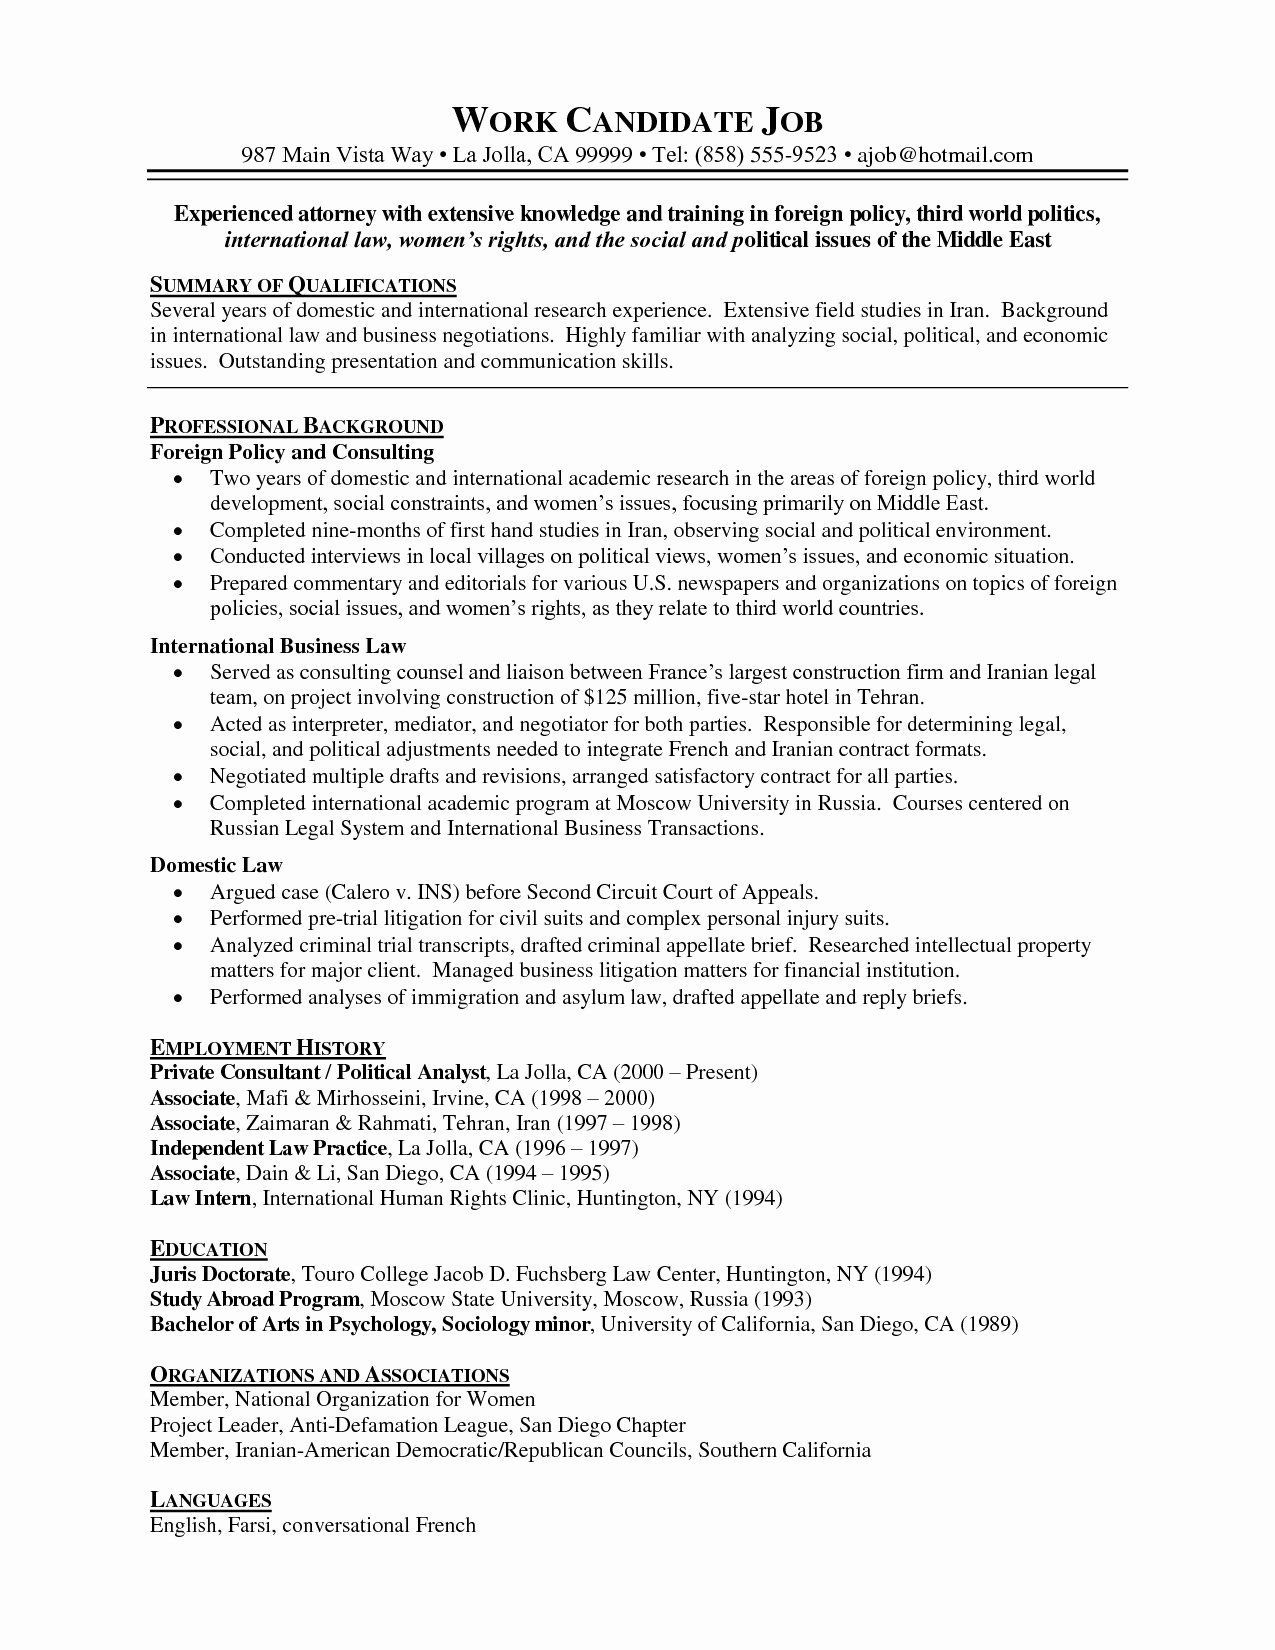 Resume Study Abroad Example Unique How To Put Study Abroad Resume Example Put Resume Study Unique Resume Examples Resume Great Cover Letters